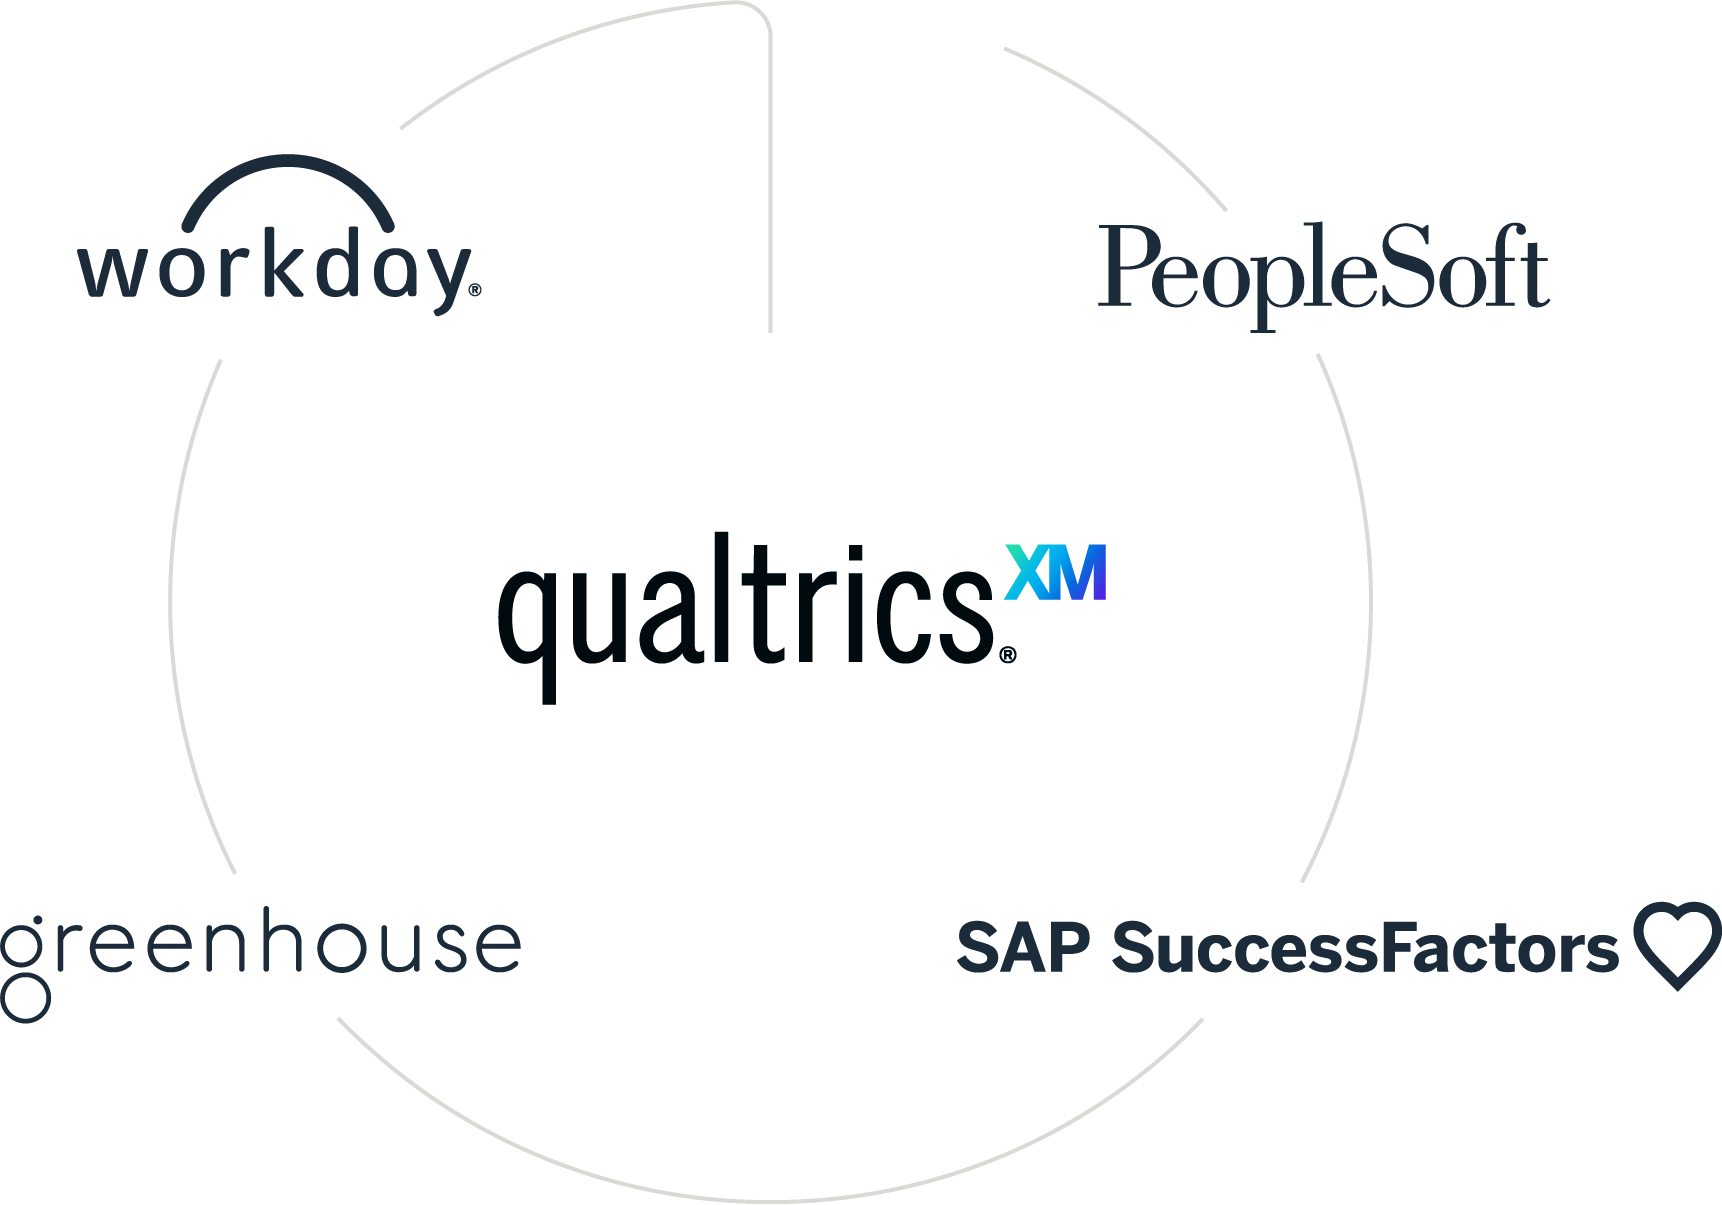 Qualtrics integrate with Workday, PeopleSoft, SAP SuccessFactors, Greenhouse and others